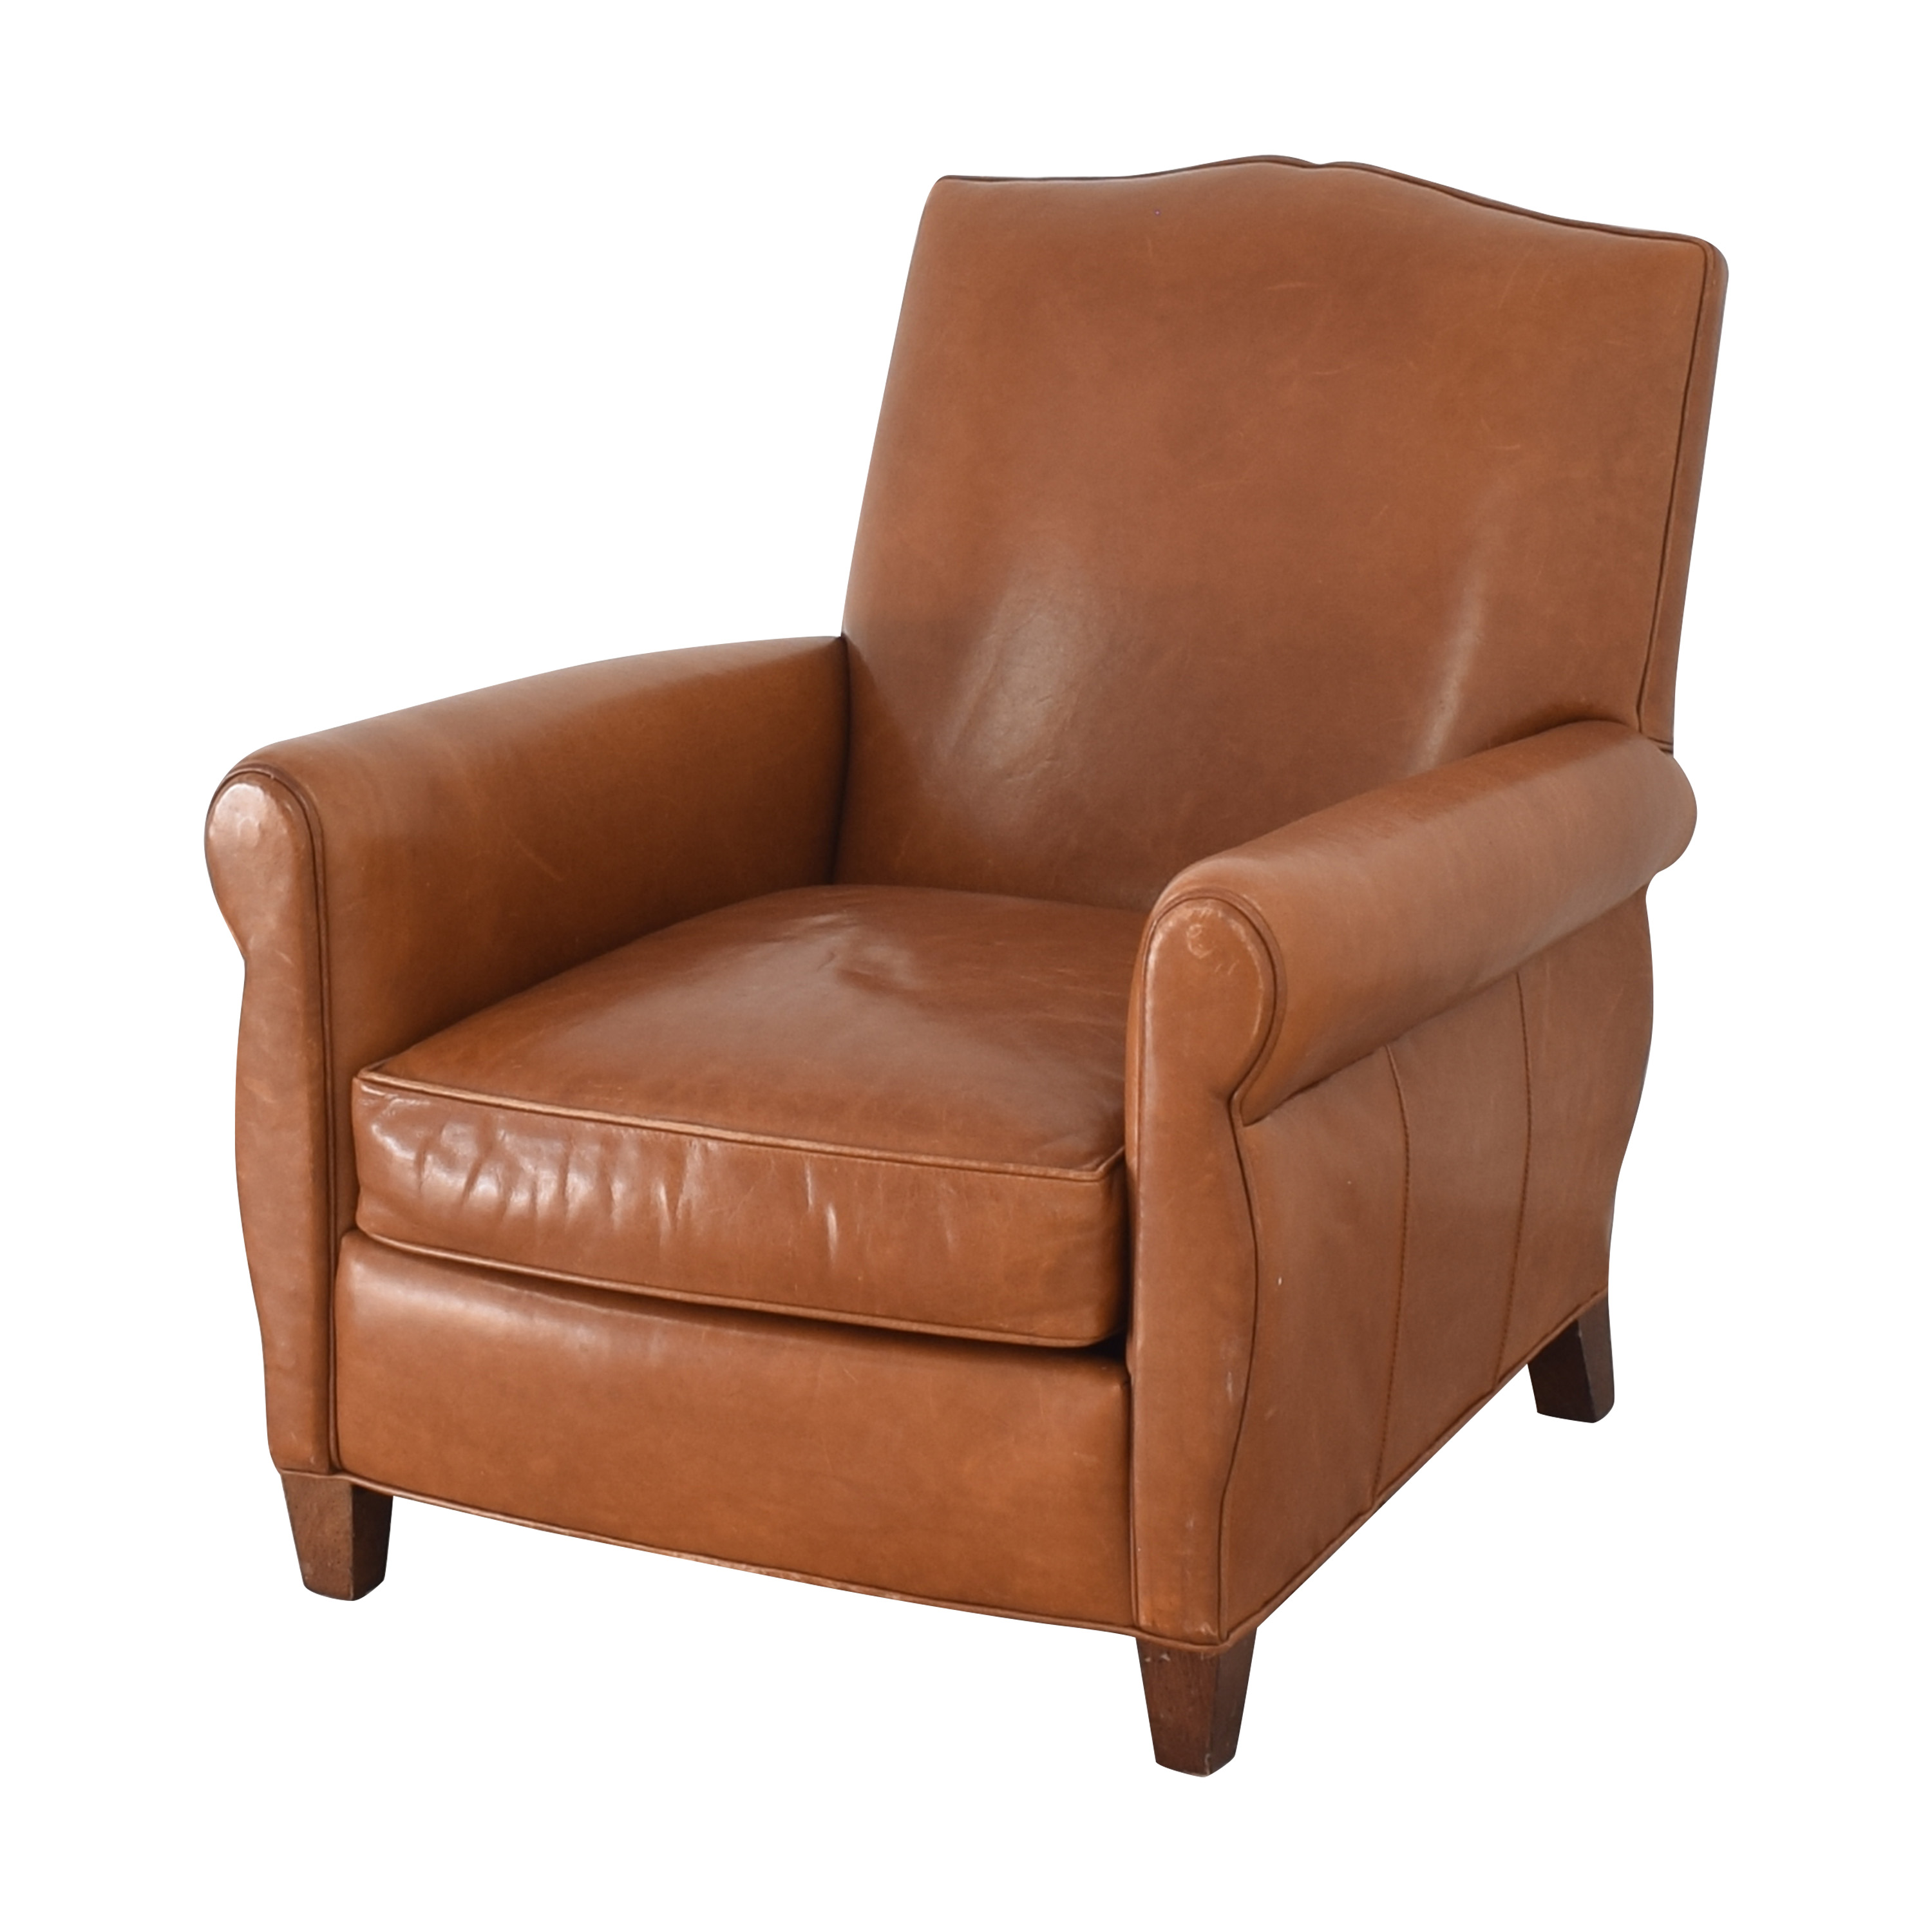 Lee Industries Lee Industries Accent Chair dimensions